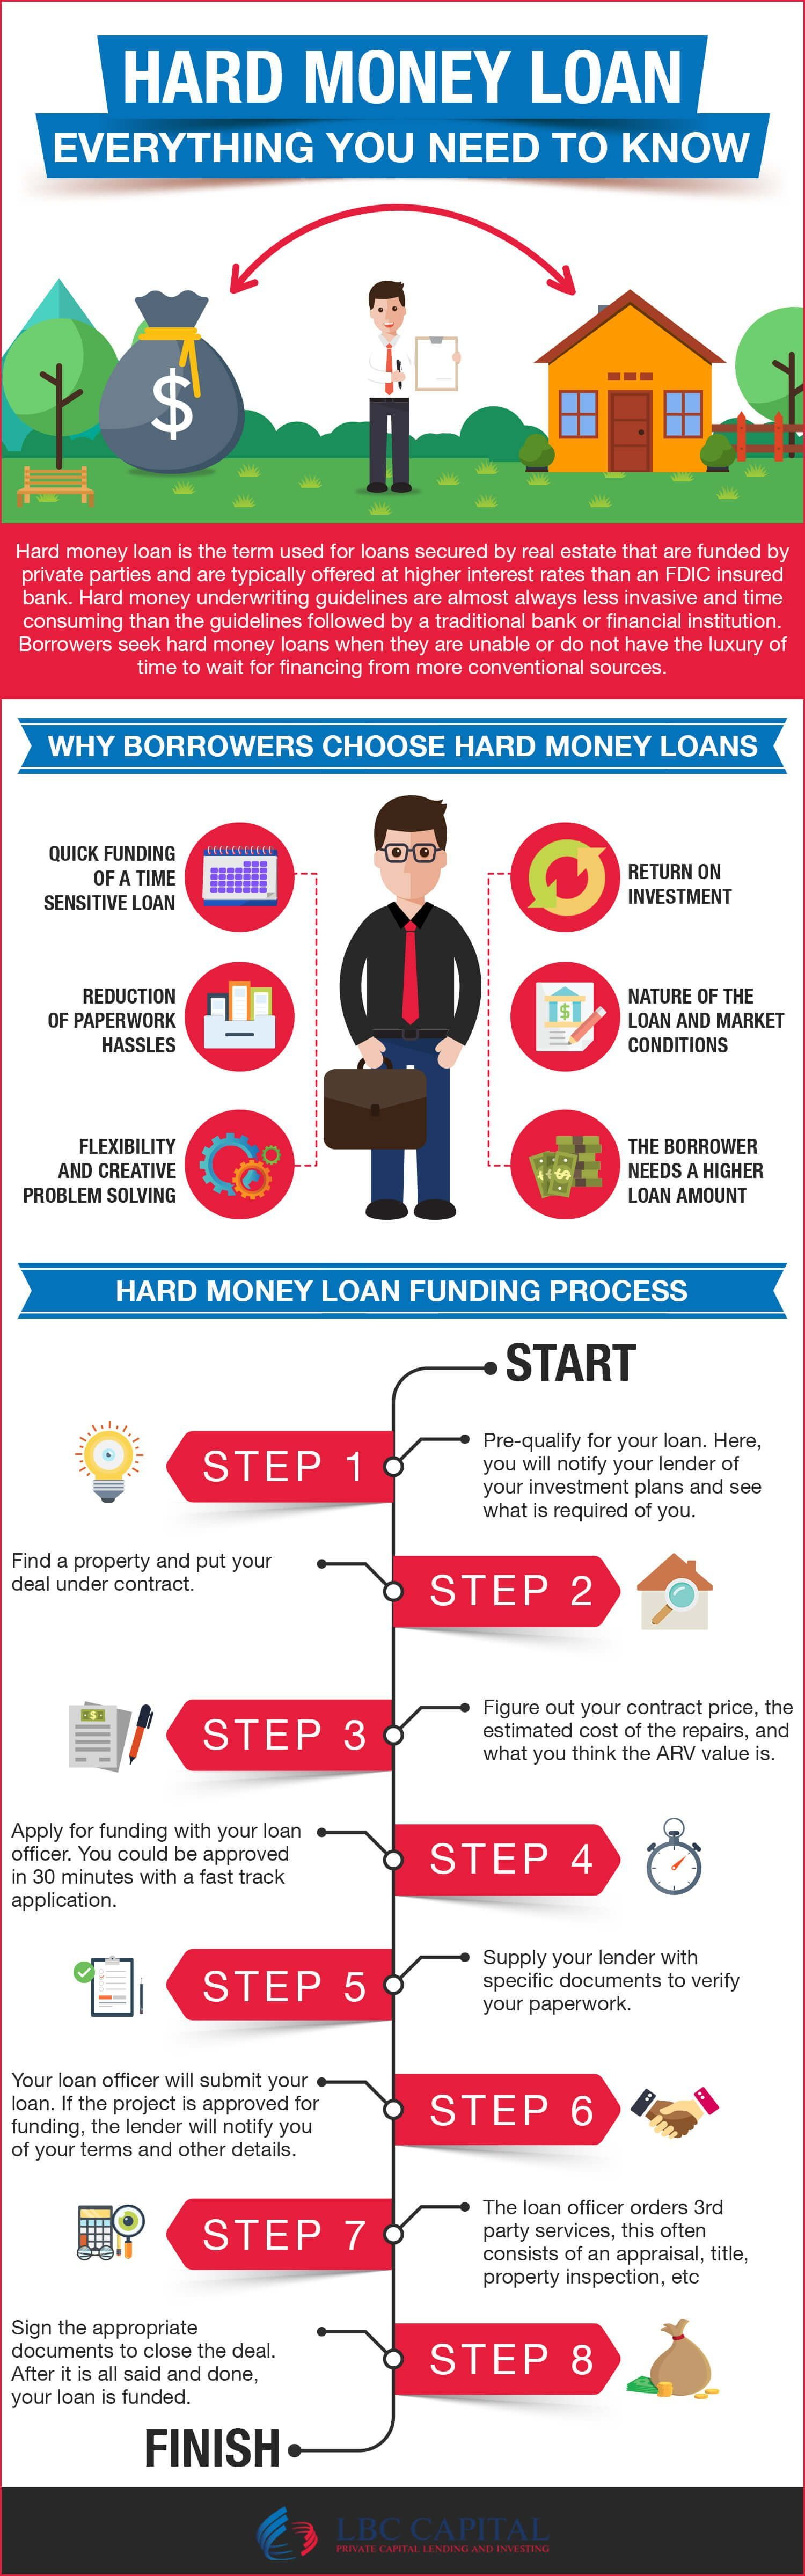 Hard Money Loans Are Much Easier To Get Approved For And Can Take Less Than 5 Days To Fund The Whole Amount This Hard Money Lenders Money Lender Money Lending